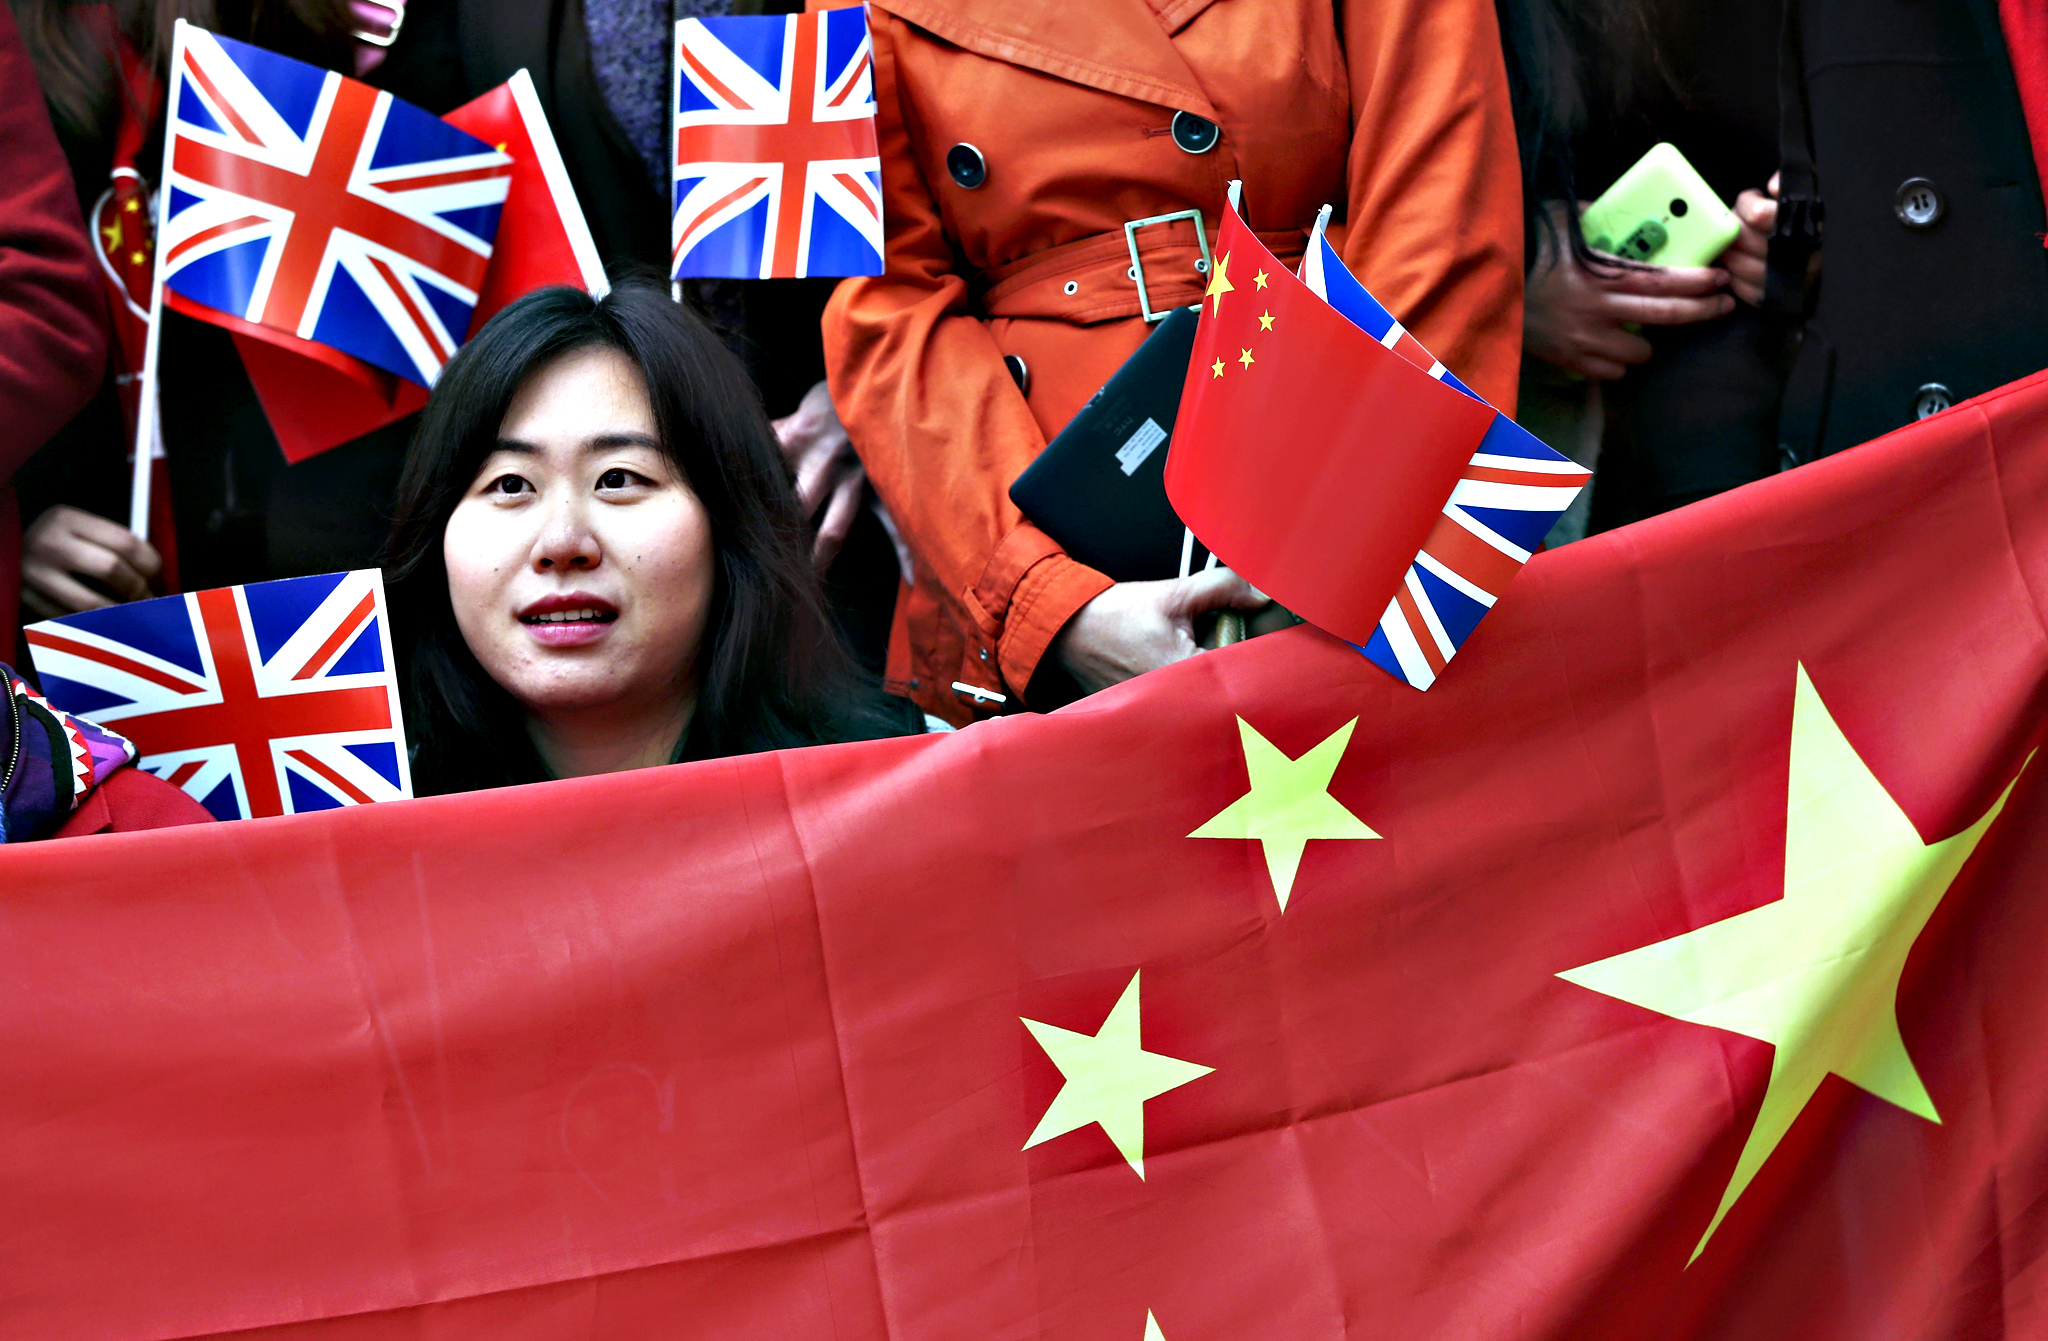 Supporters of China's President Xi Jinping wait on the Mall for him to pass during his ceremonial welcome, in London, Britain, October 20, 2015. Xi is on a State visit to Britain